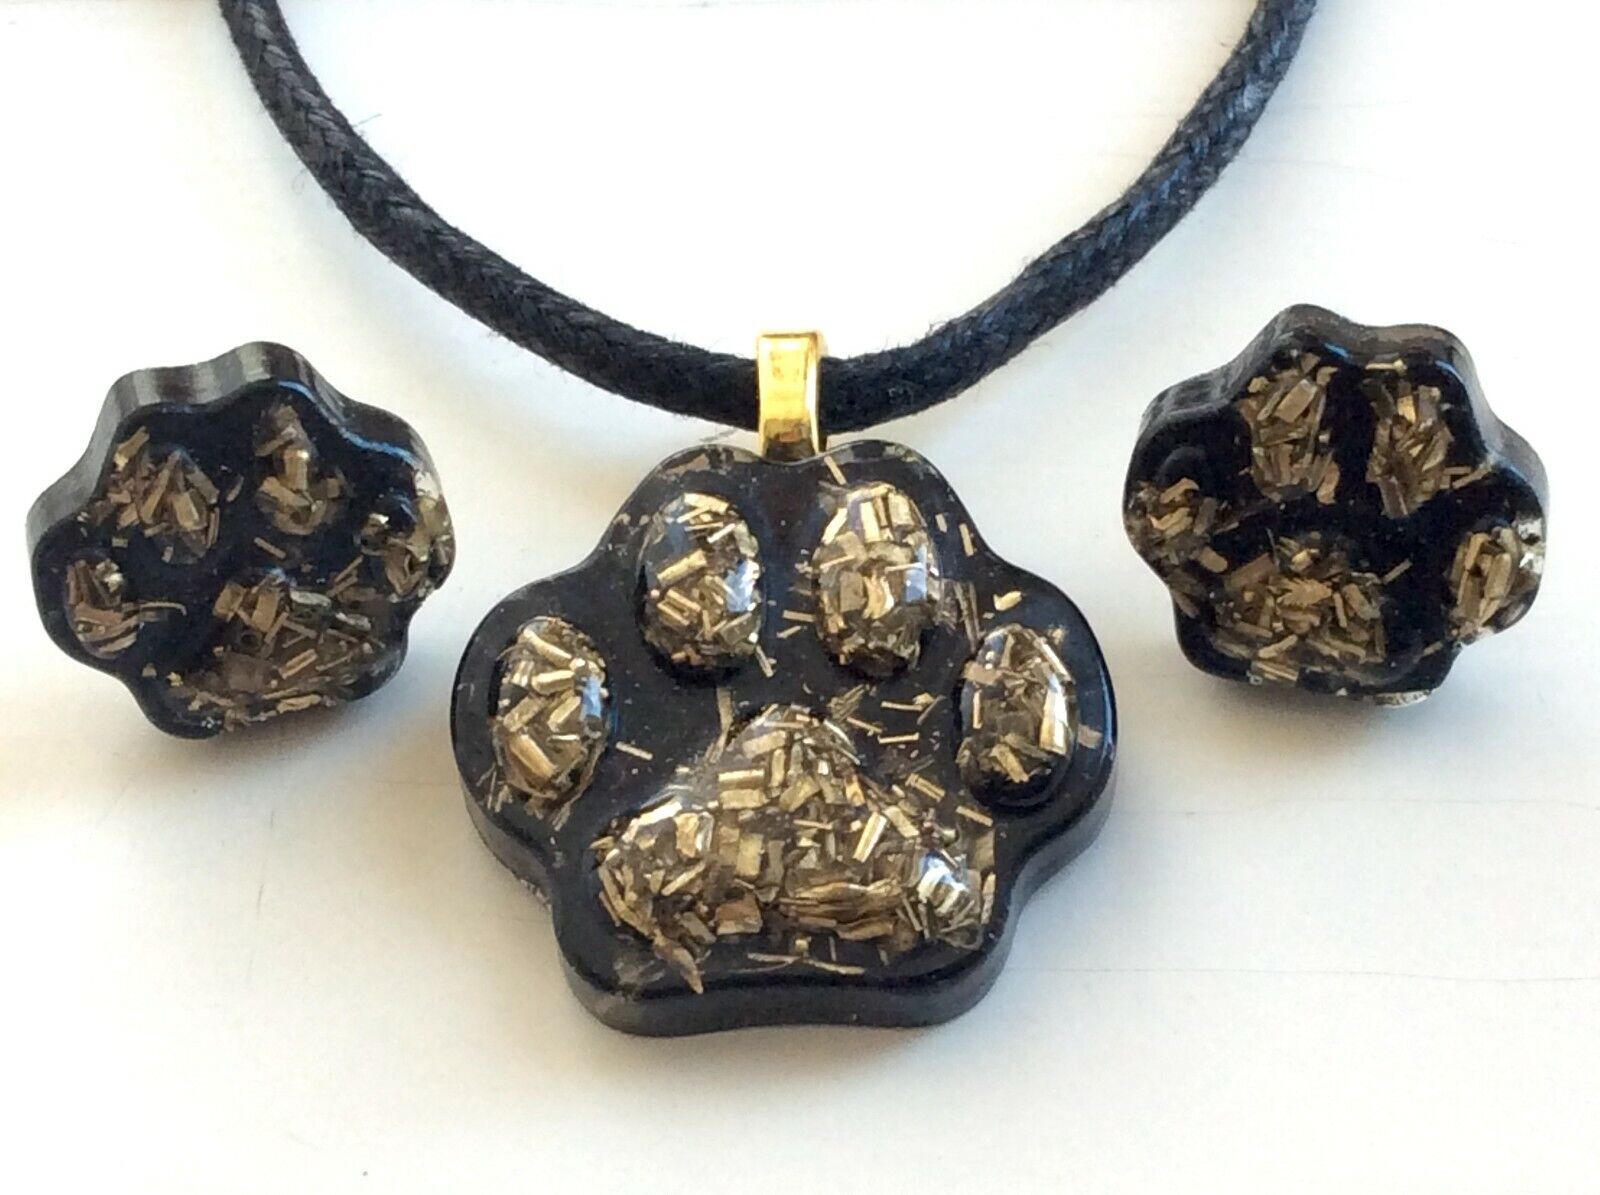 Orgone Cat Paw Pendant Necklace Earrings With Black Tourmaline. EMF Protection - $15.99